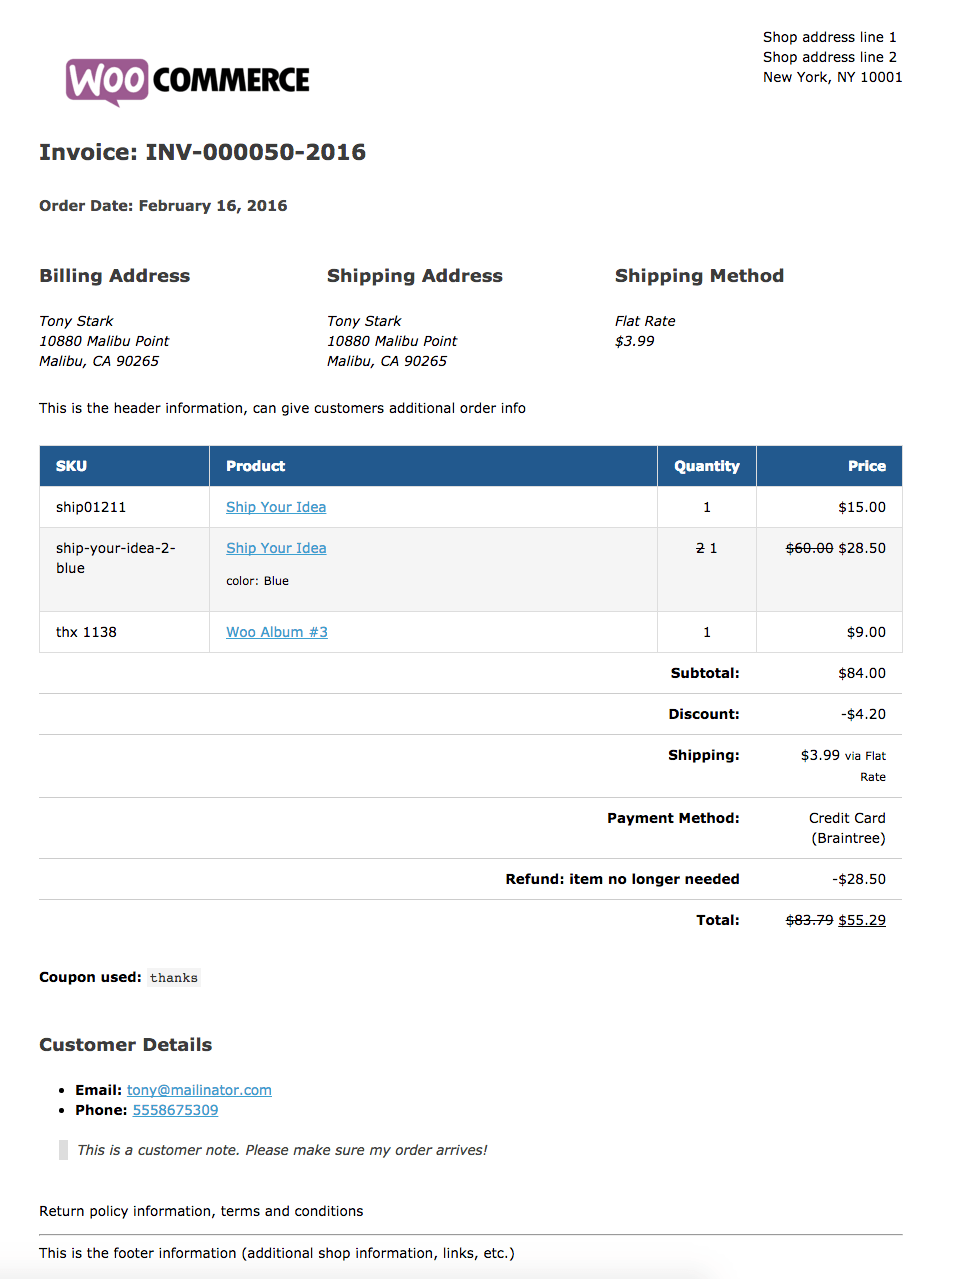 Opposenewapstandardsus  Unusual Print Invoices Amp Packing Lists  Woocommerce With Entrancing View A Sample Invoice  With Captivating Invoice Price Vs Sticker Price Also Invoice Programs For Small Business Free In Addition Immigration Visa Invoice Payment Center And Honda Invoice Prices As Well As Crm With Invoicing Additionally Preforma Invoice From Woocommercecom With Opposenewapstandardsus  Entrancing Print Invoices Amp Packing Lists  Woocommerce With Captivating View A Sample Invoice  And Unusual Invoice Price Vs Sticker Price Also Invoice Programs For Small Business Free In Addition Immigration Visa Invoice Payment Center From Woocommercecom